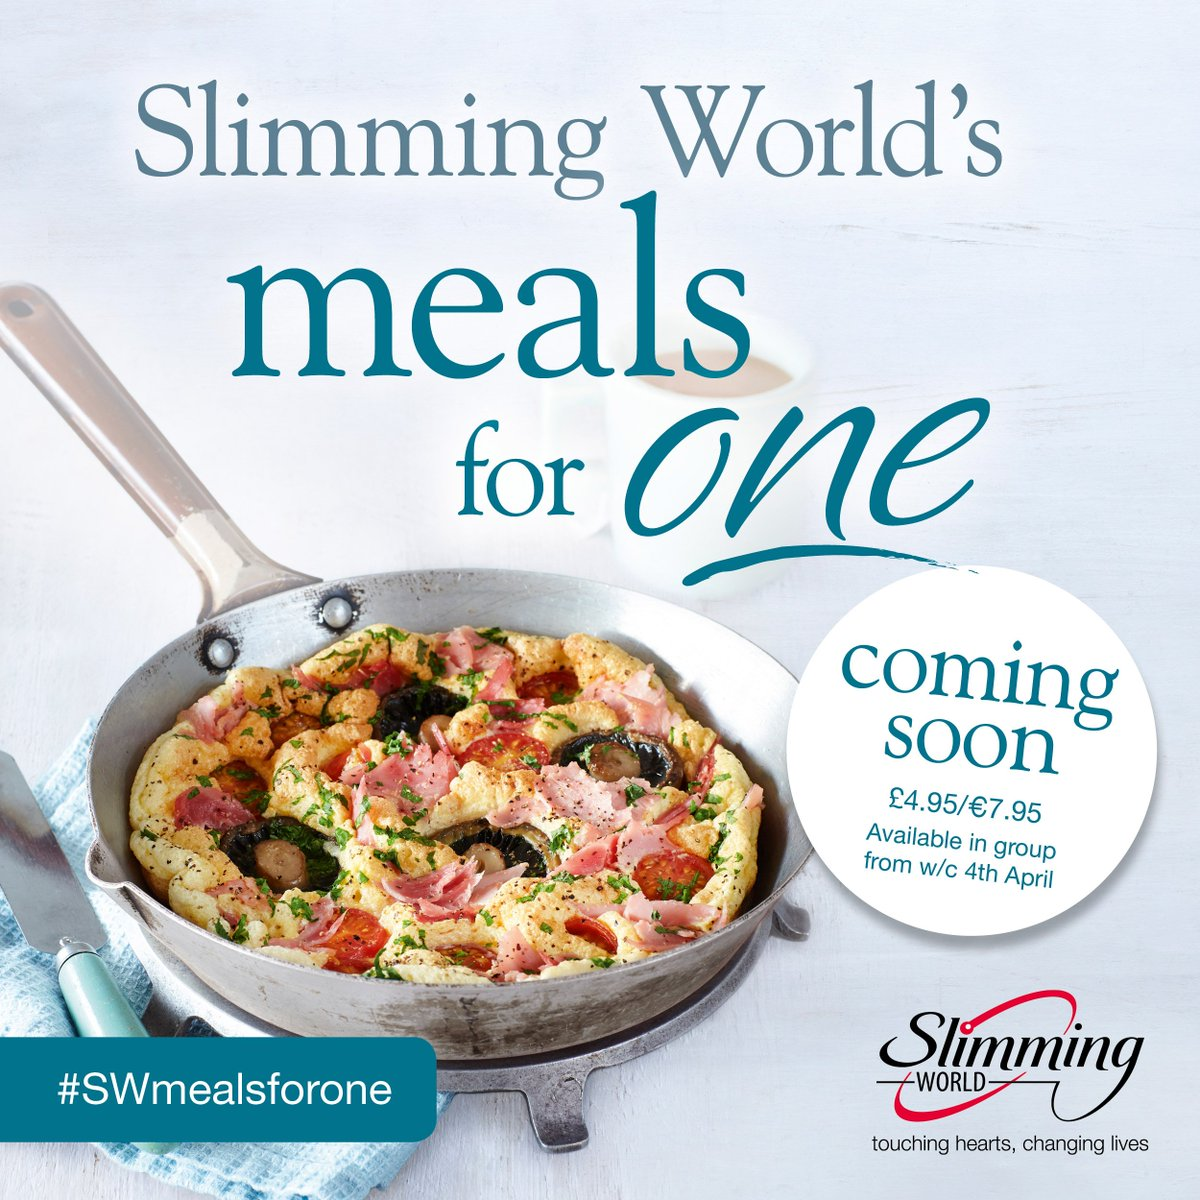 Slimming world on twitter packed with 60 super simple recipes you 39 ll love our new recipe book New slimming world meals